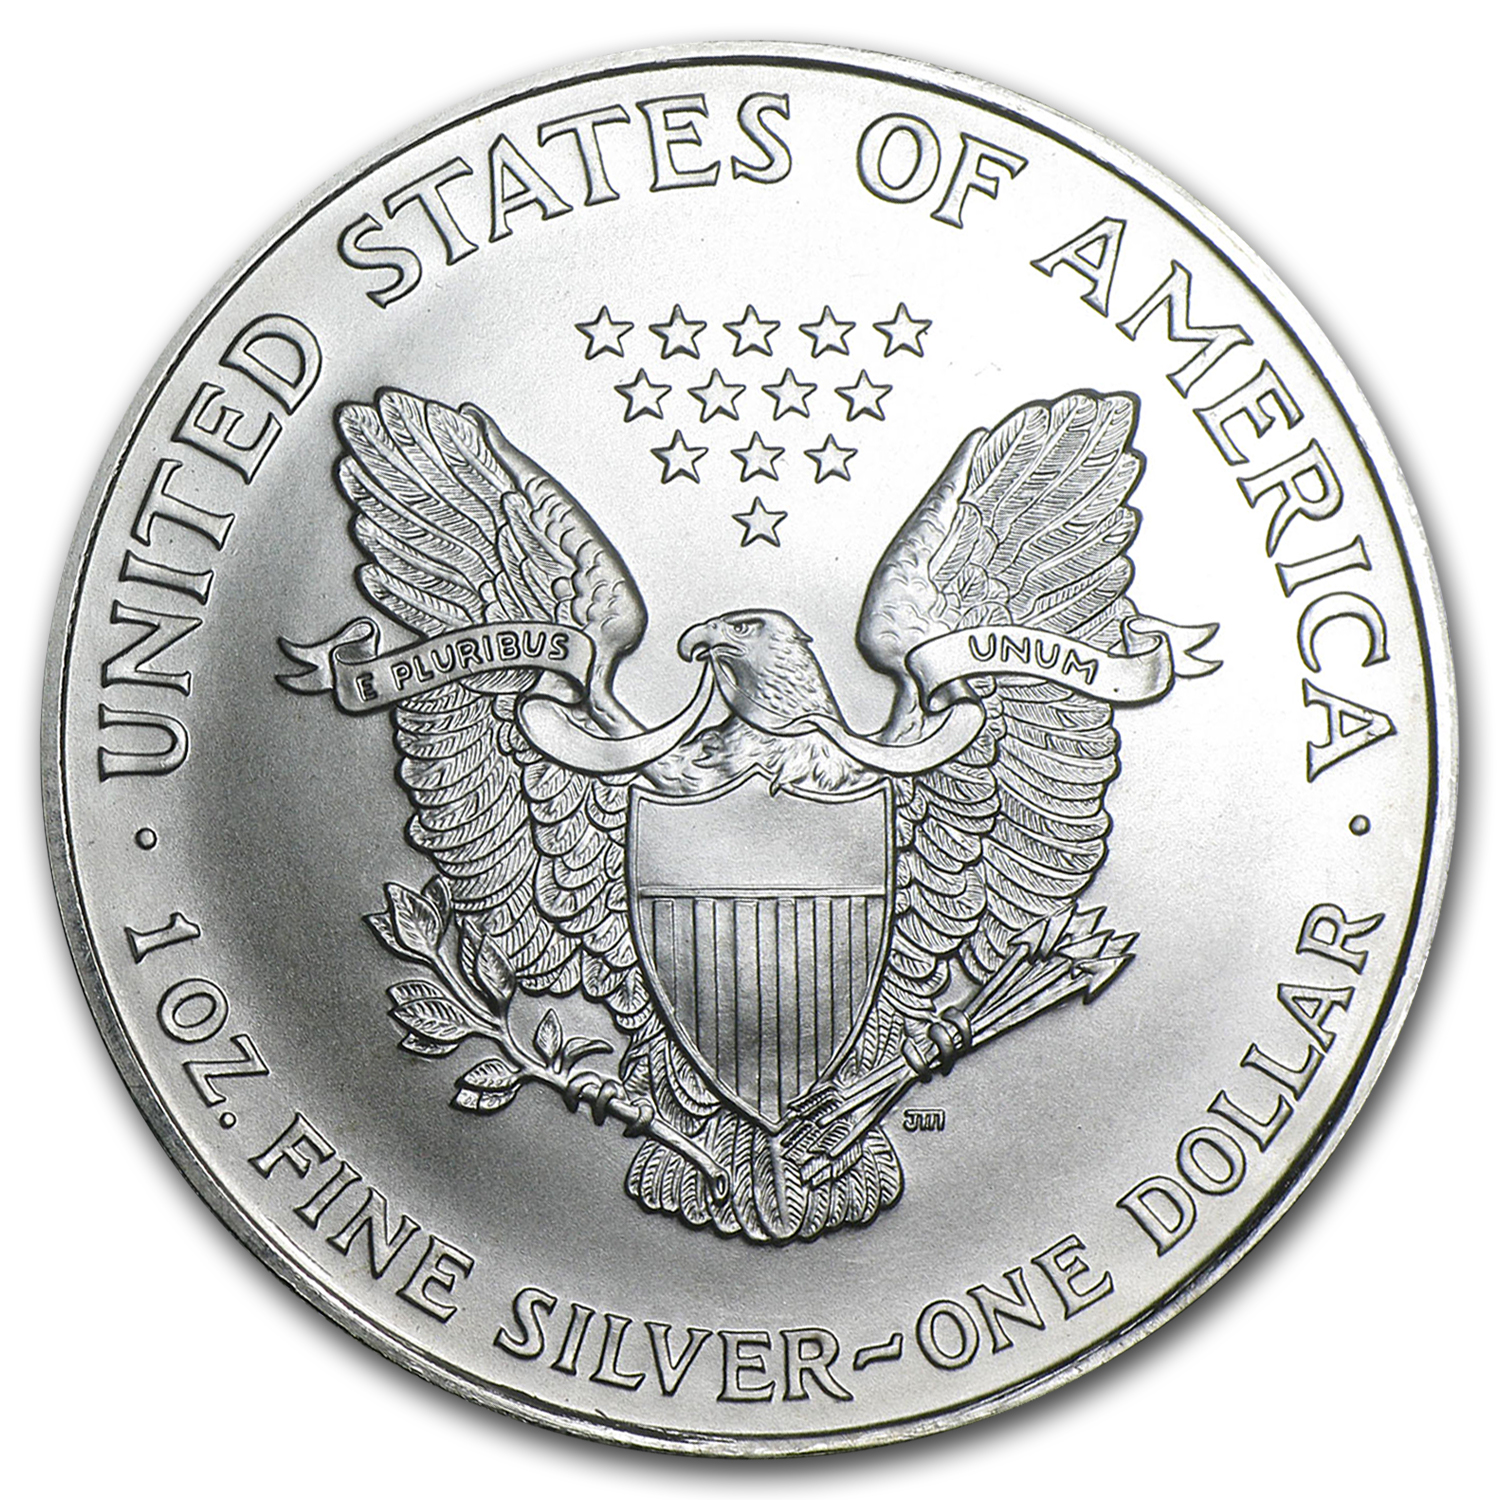 1997 1 oz Silver American Eagle (Brilliant Uncirculated)